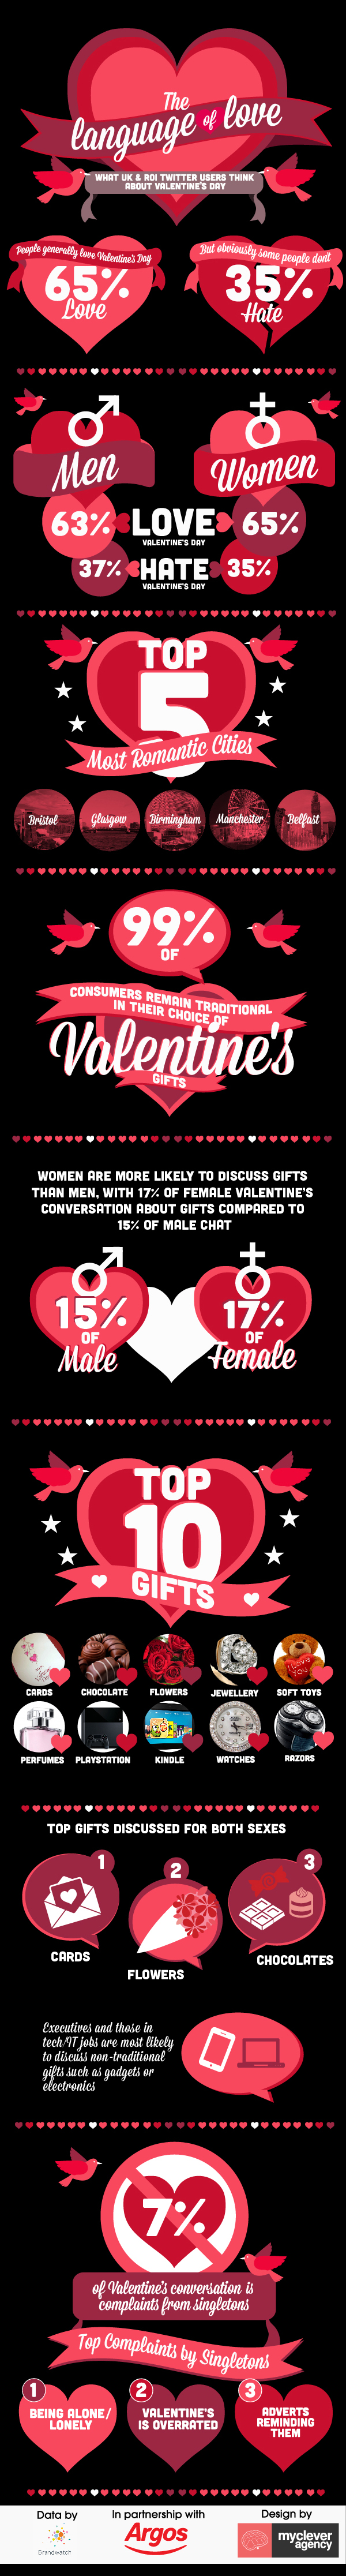 How Romantic Are the UK & ROI Feeling This Valentine's Day?